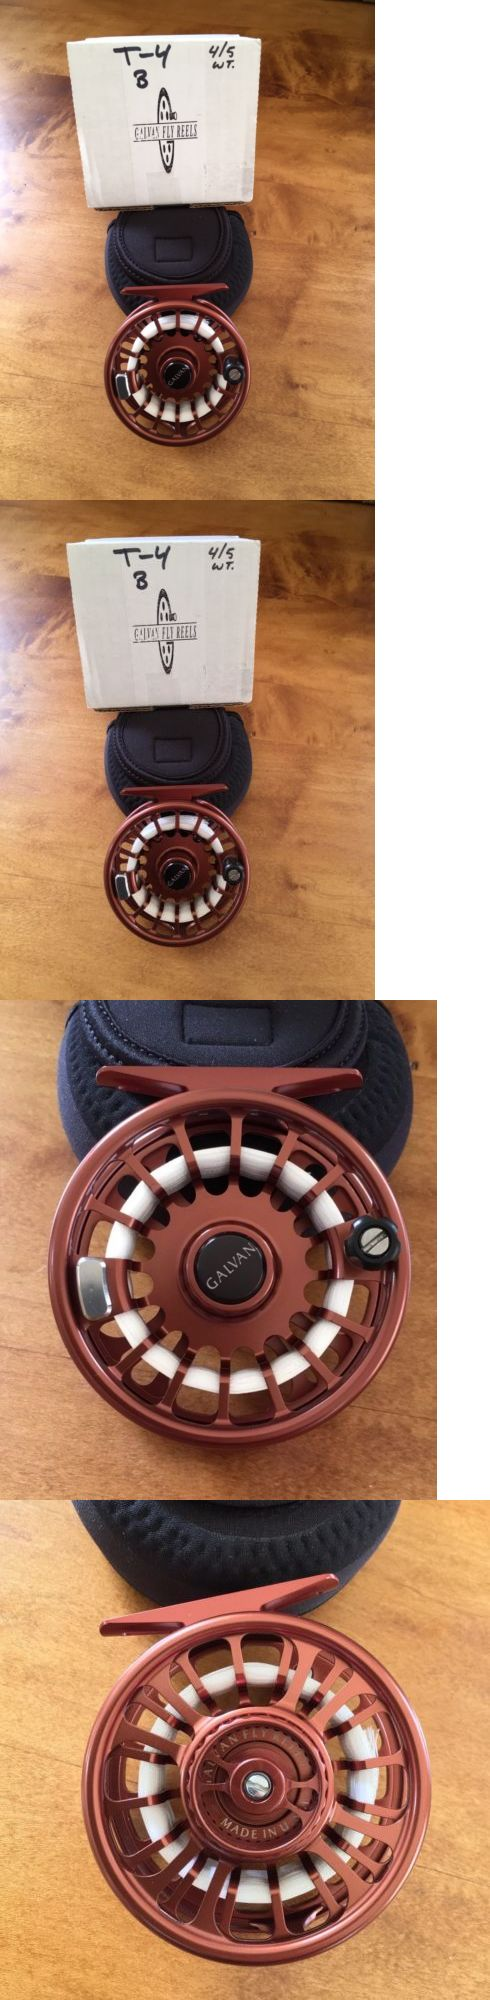 Fly Fishing Reels 23818: Galvan T-4 Torque 4 Fly Reel In Rare Bronze Color ~ Made In The Usa (New) -> BUY IT NOW ONLY: $324 on eBay!